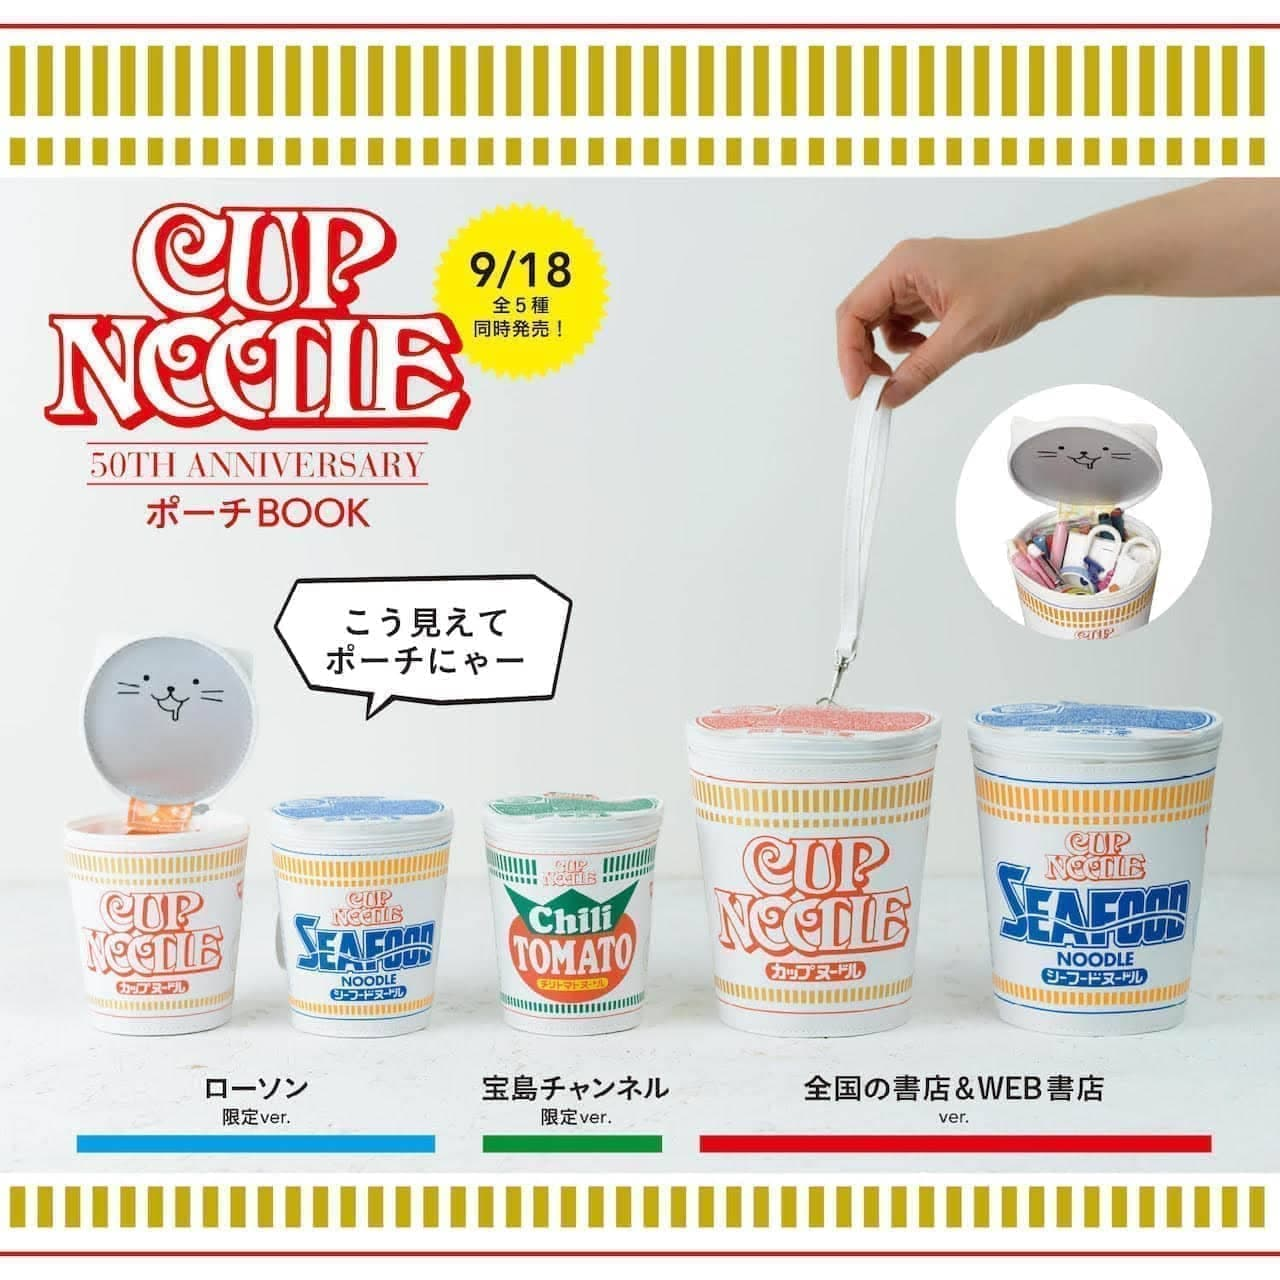 「CUP NOODLE 50TH ANNIVERSARY BOOK」シリーズ